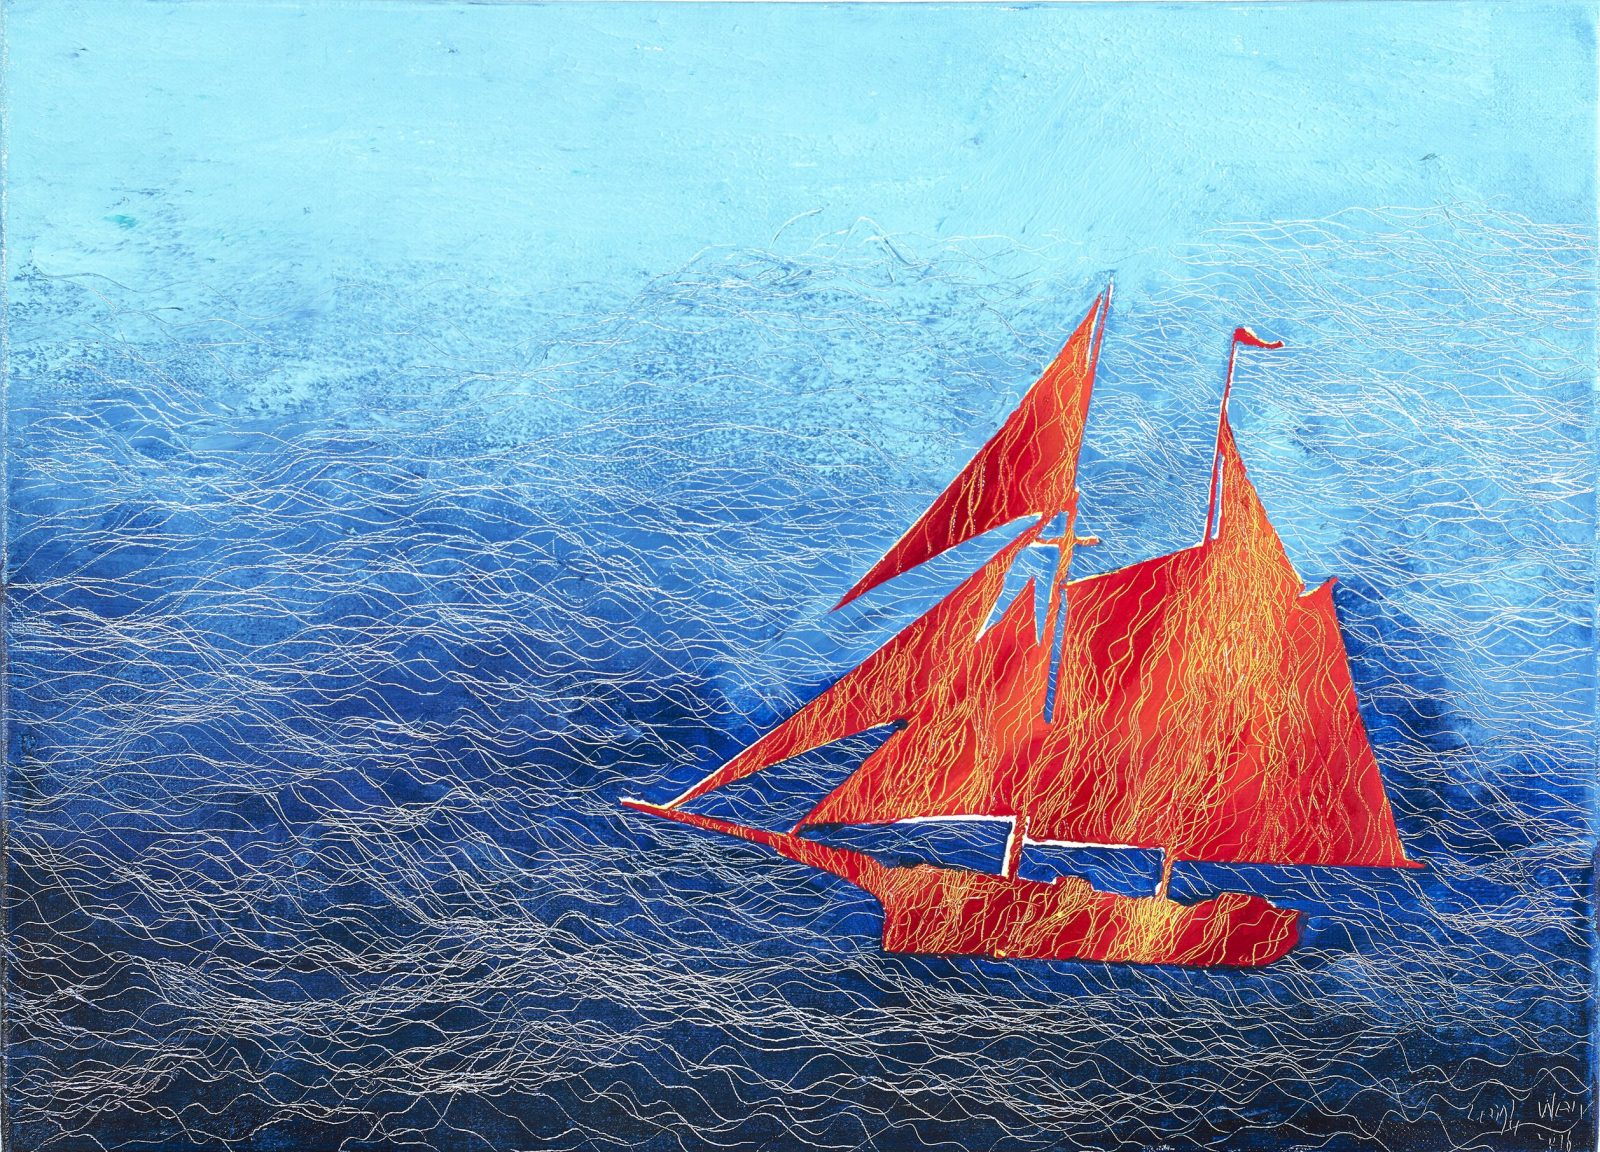 帆行 1, Sail 1, 33 x 45 cm (8P), oil on linen, 2016